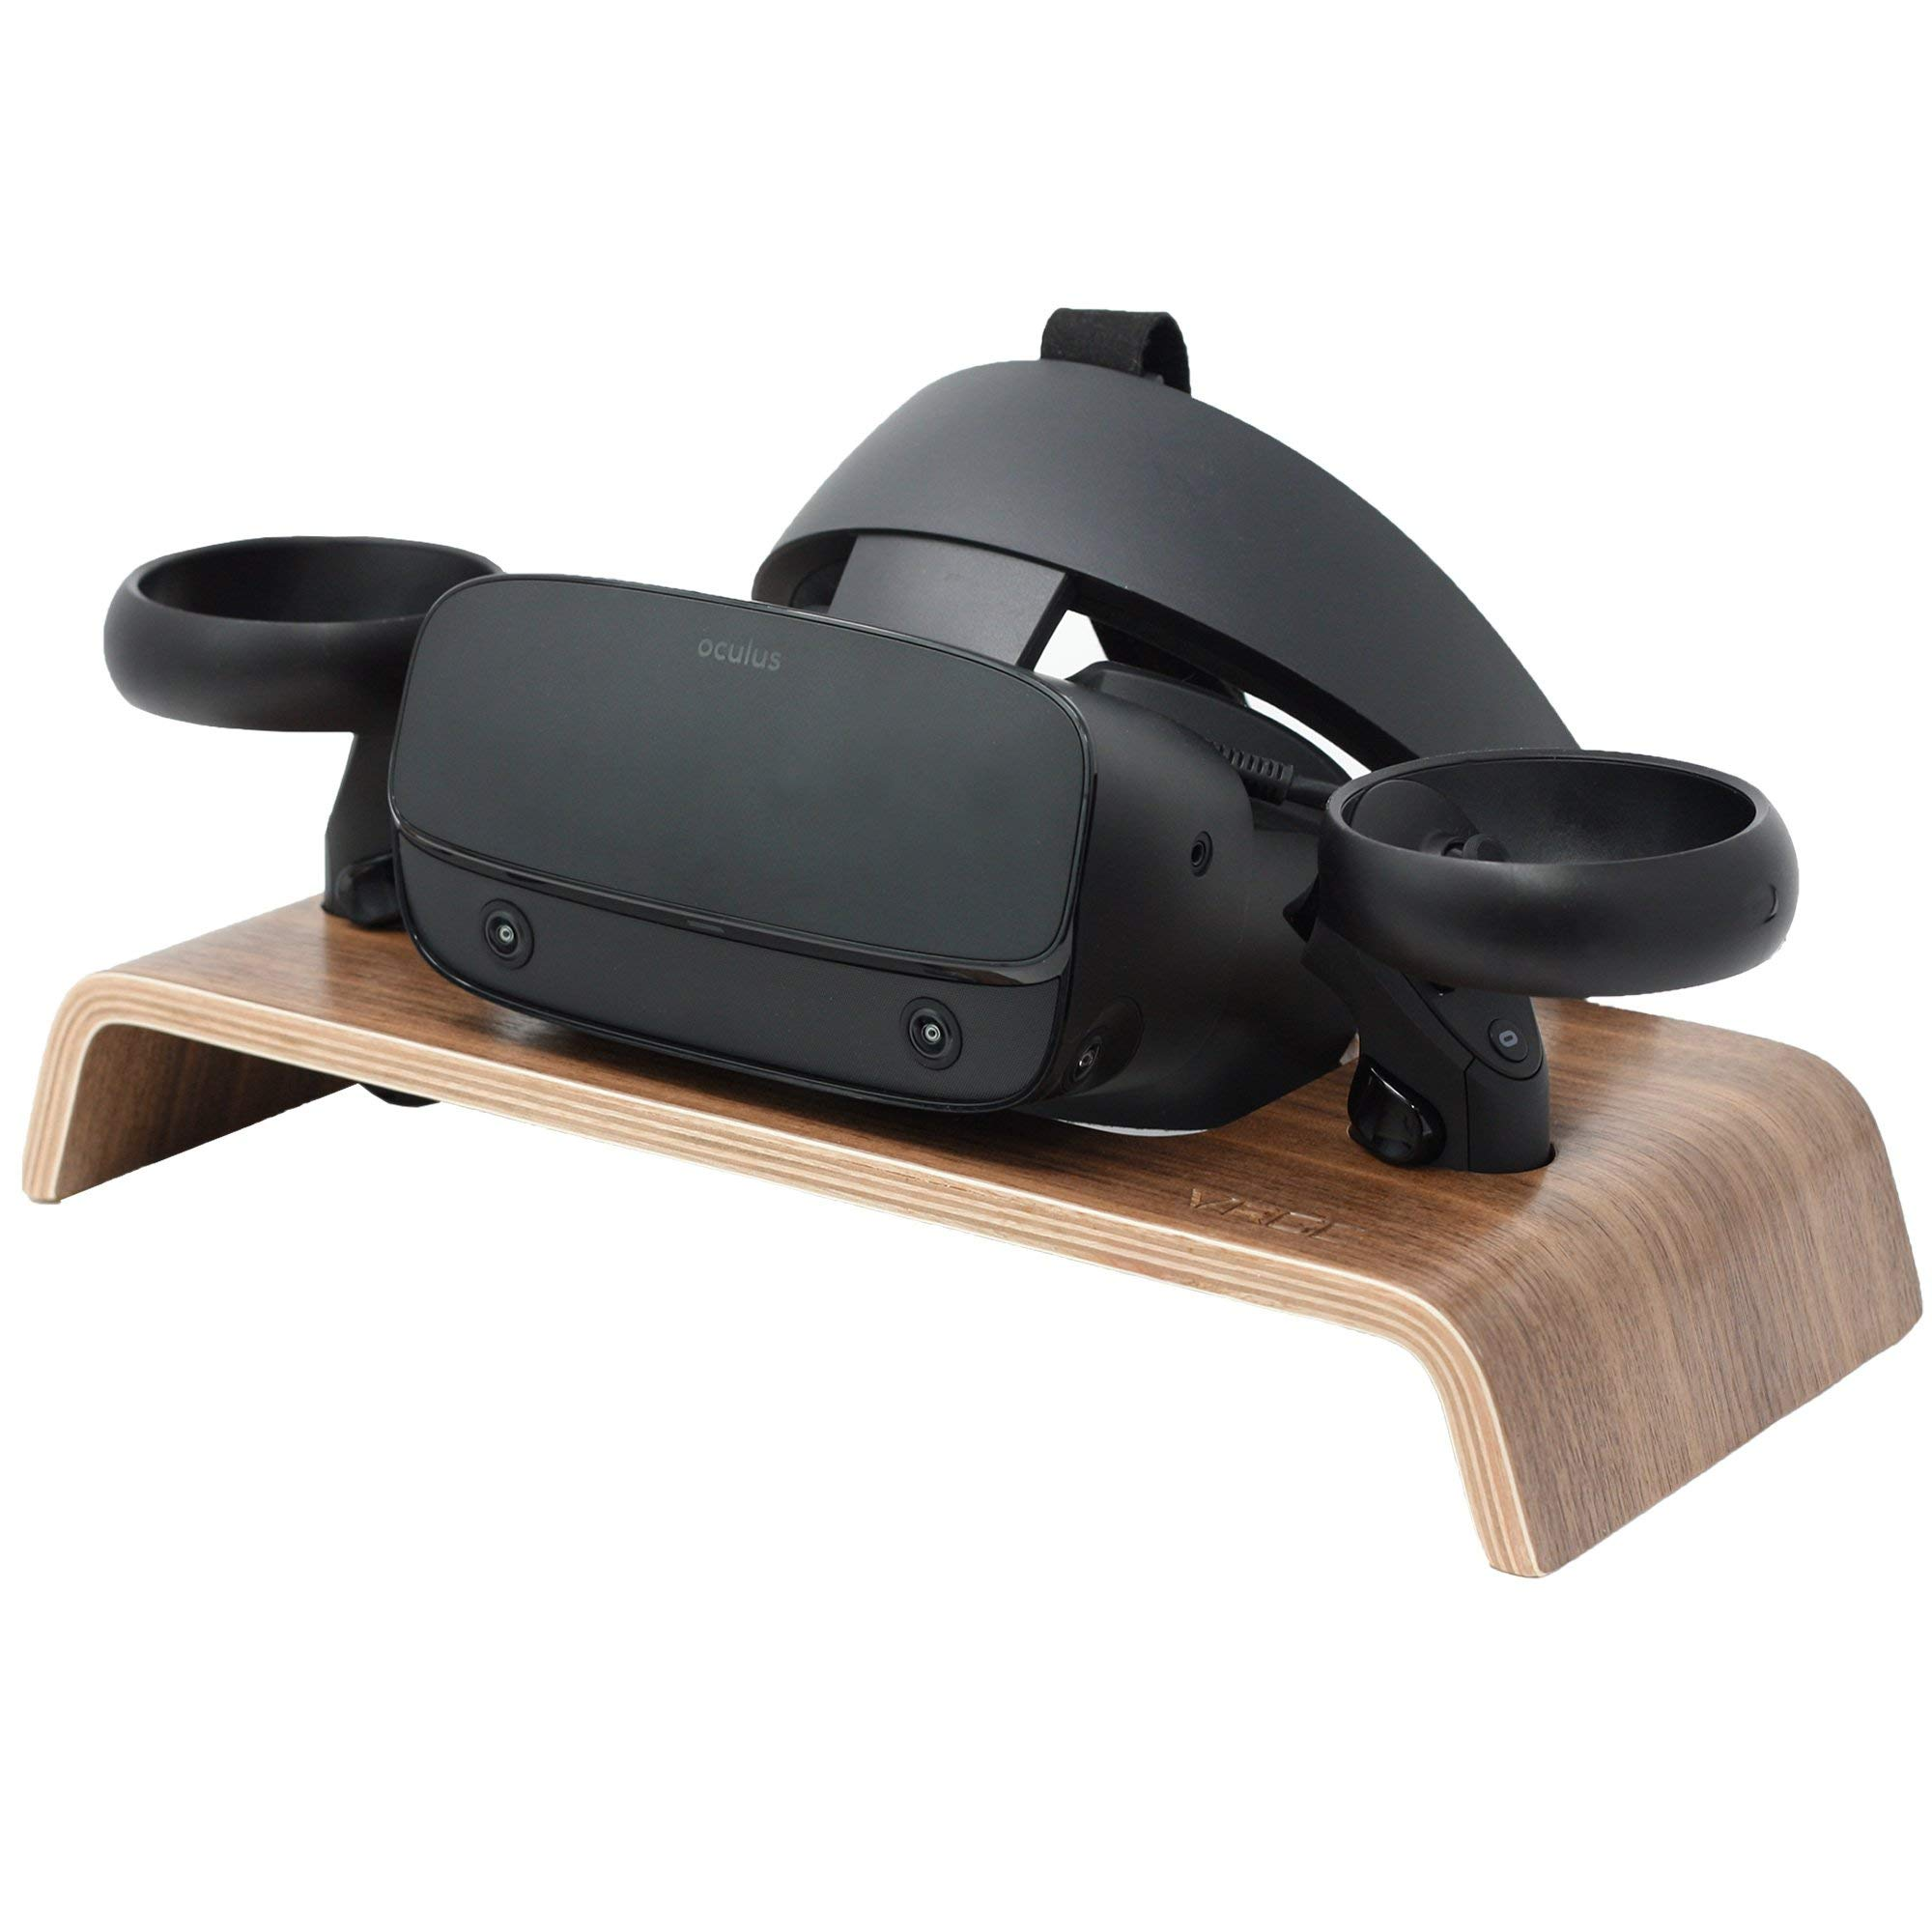 VRGE – Premium Walnut Veneer Wood Storage Stand for Oculus Rift, Rift S and Quest Headset and Controllers